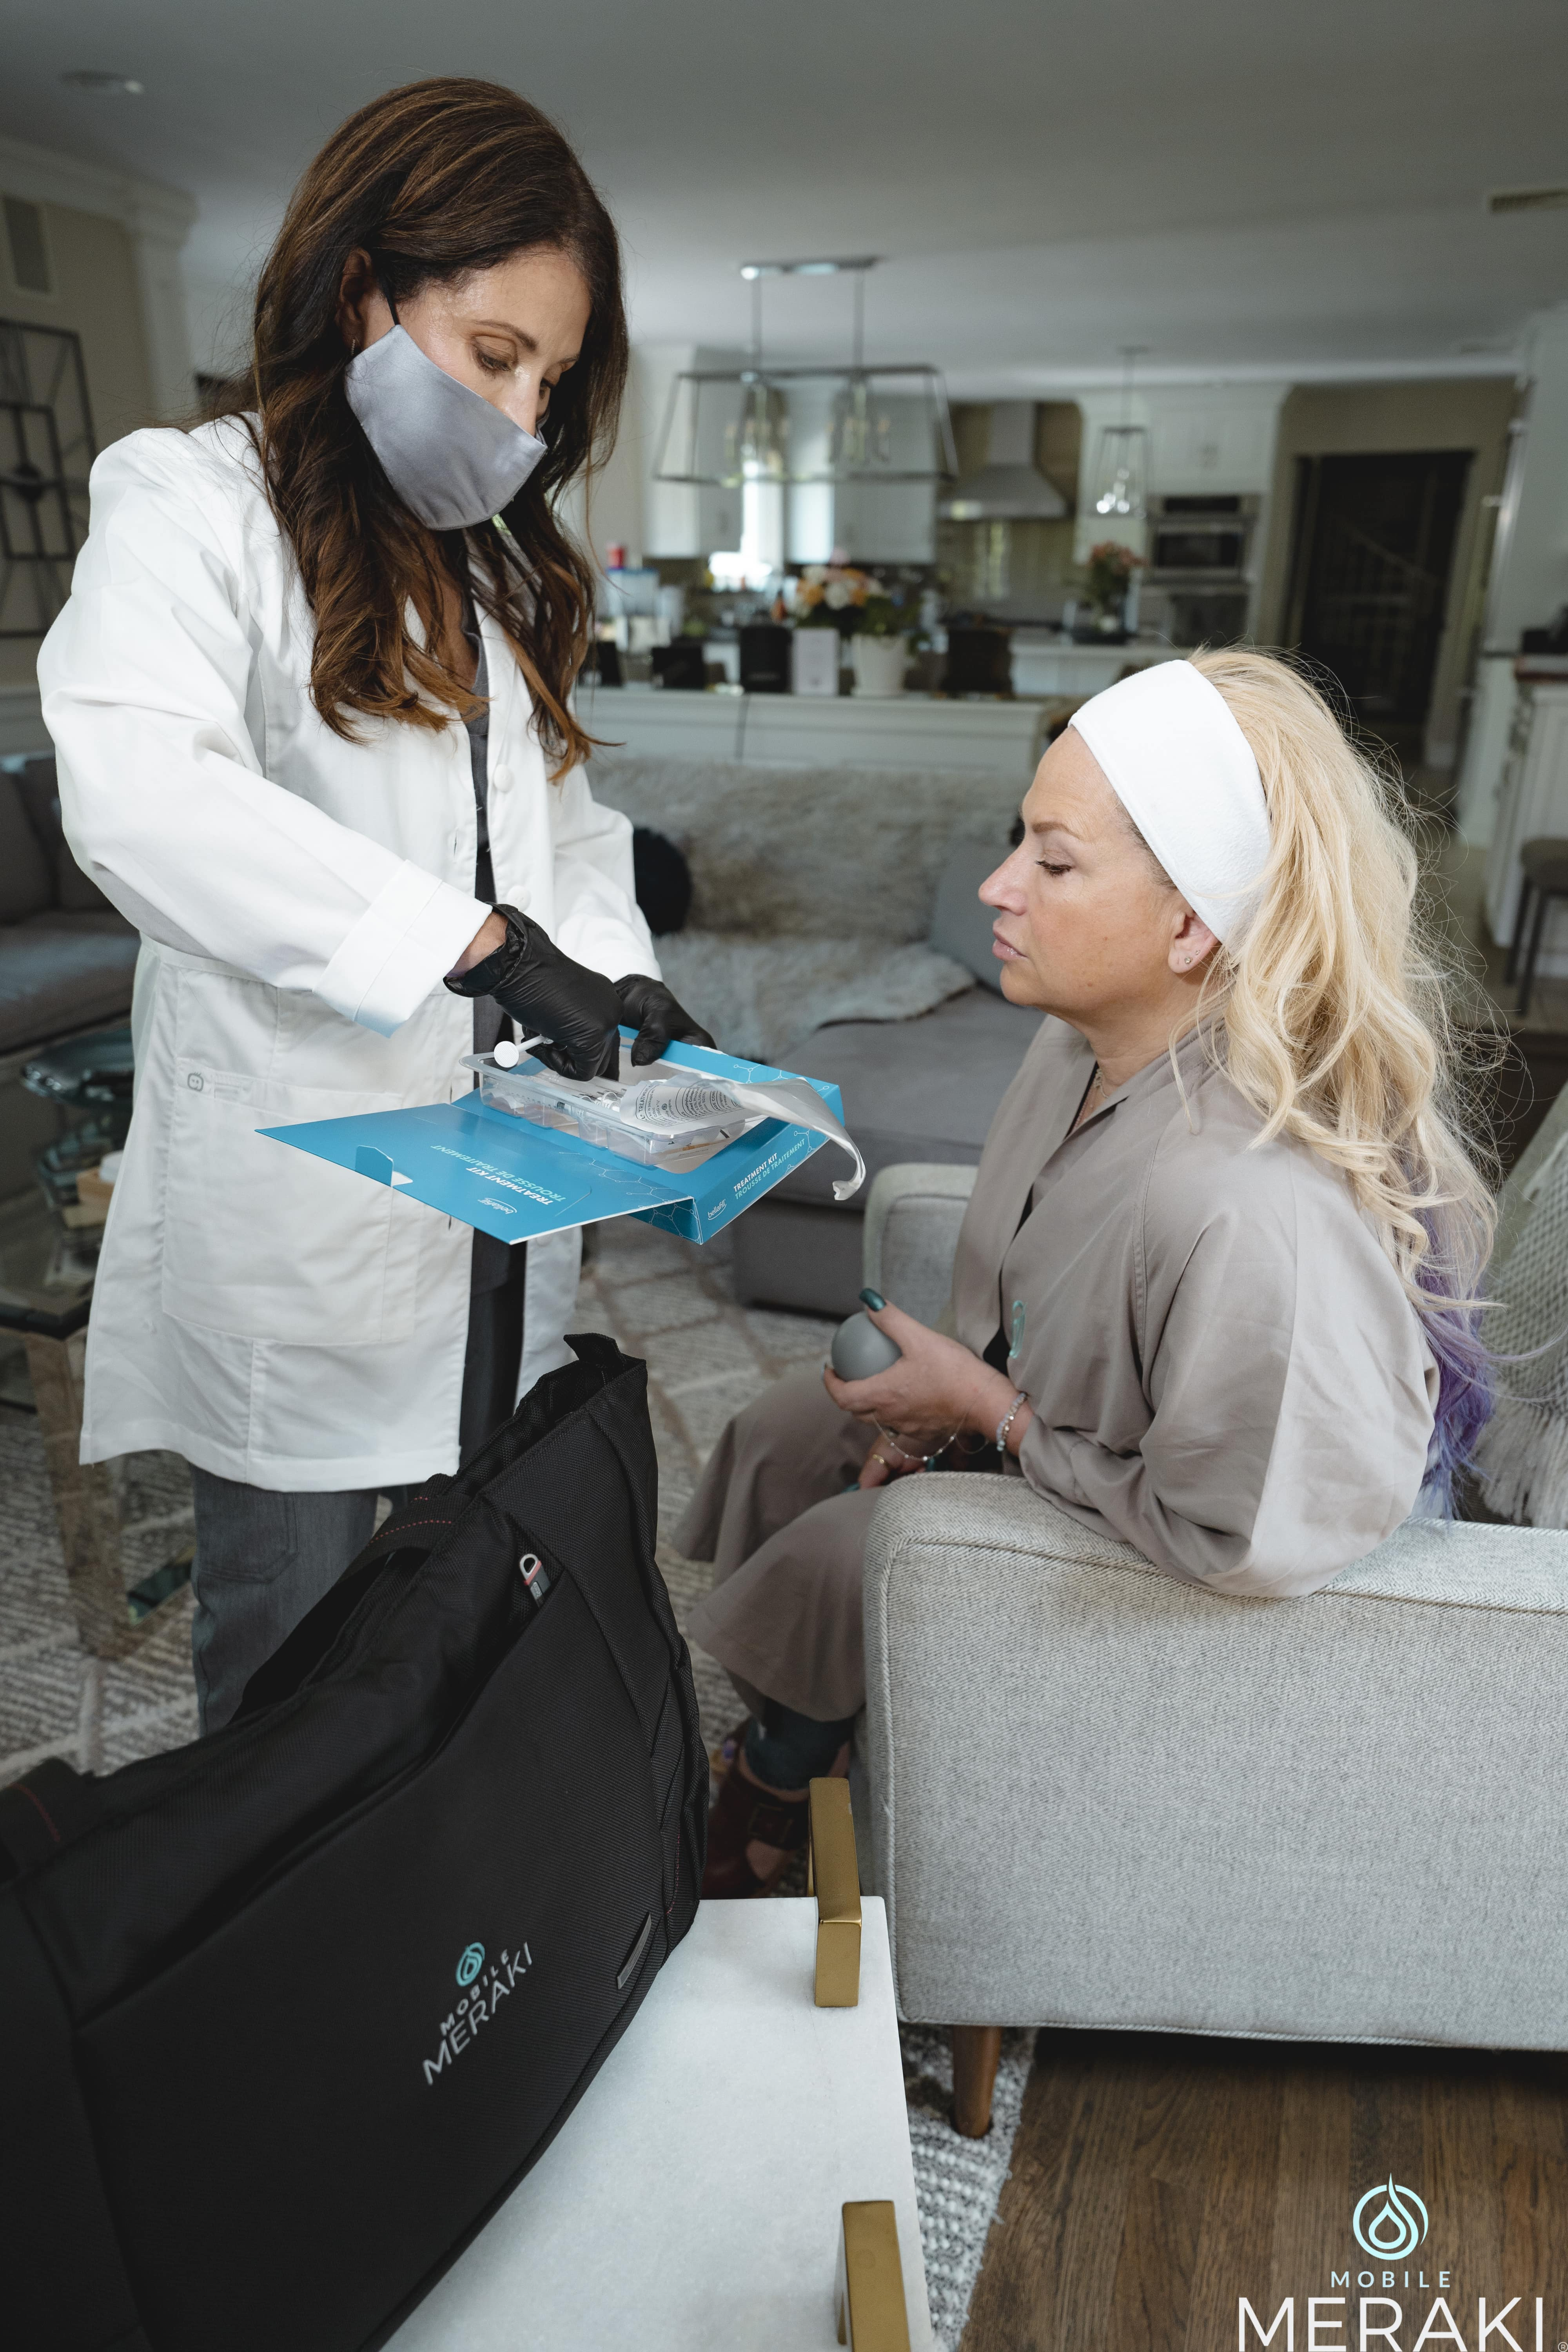 Meraki's In Home Care team helping a patient with options